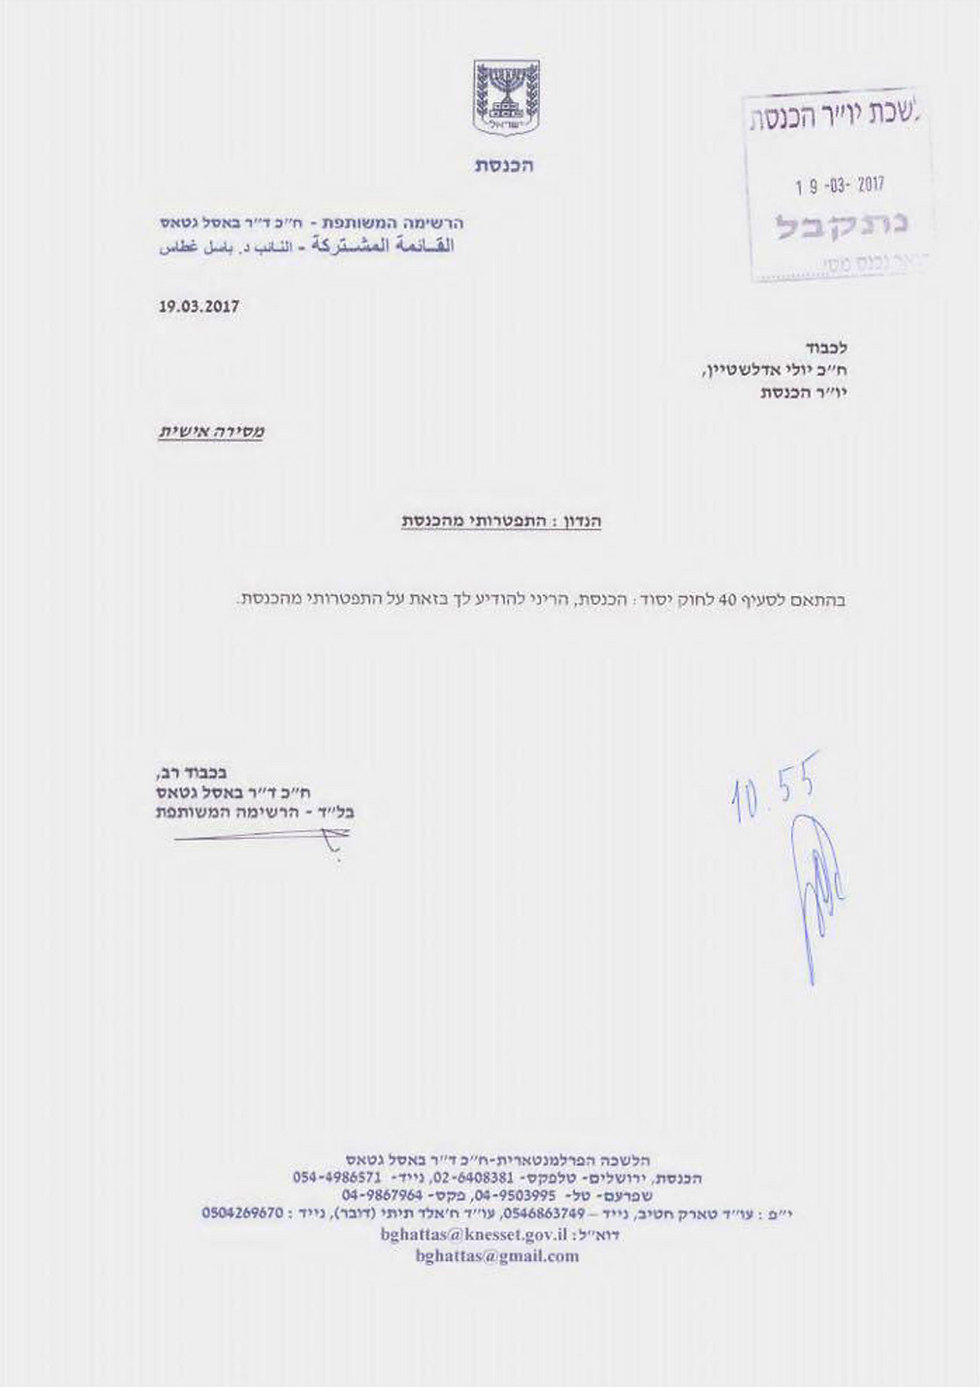 Copy of Ghattas' resignation notice